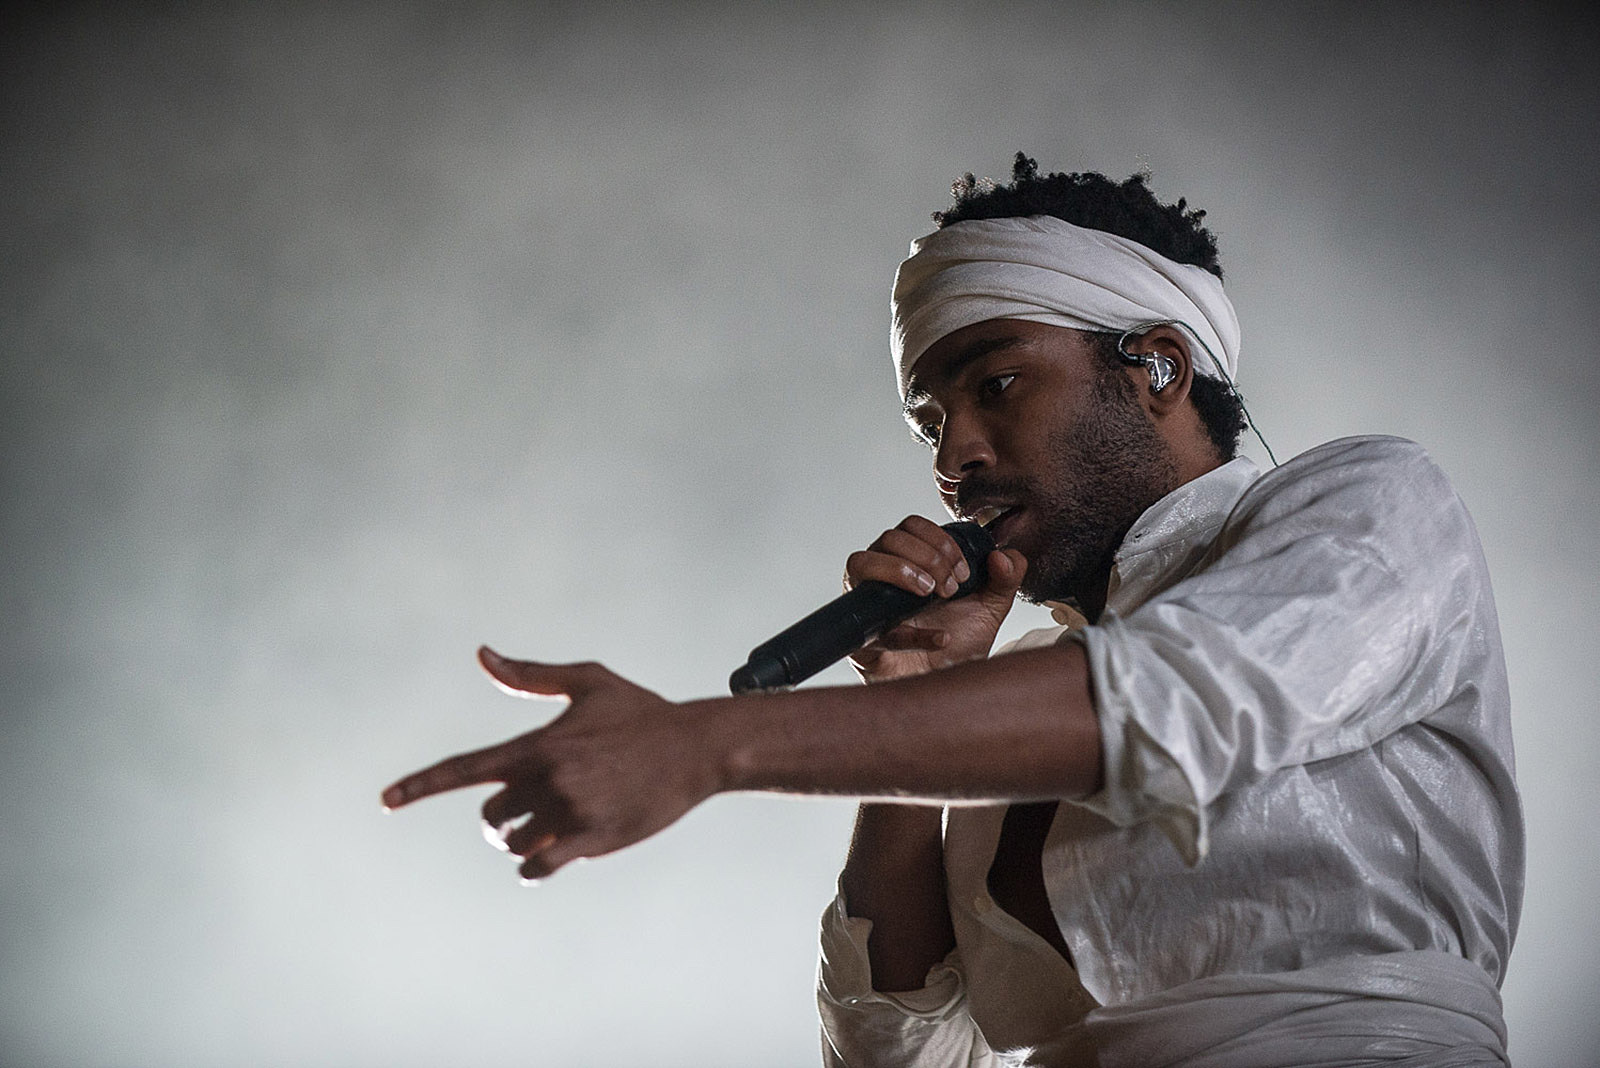 Childish Gambino tour dates include Chicago's United Center